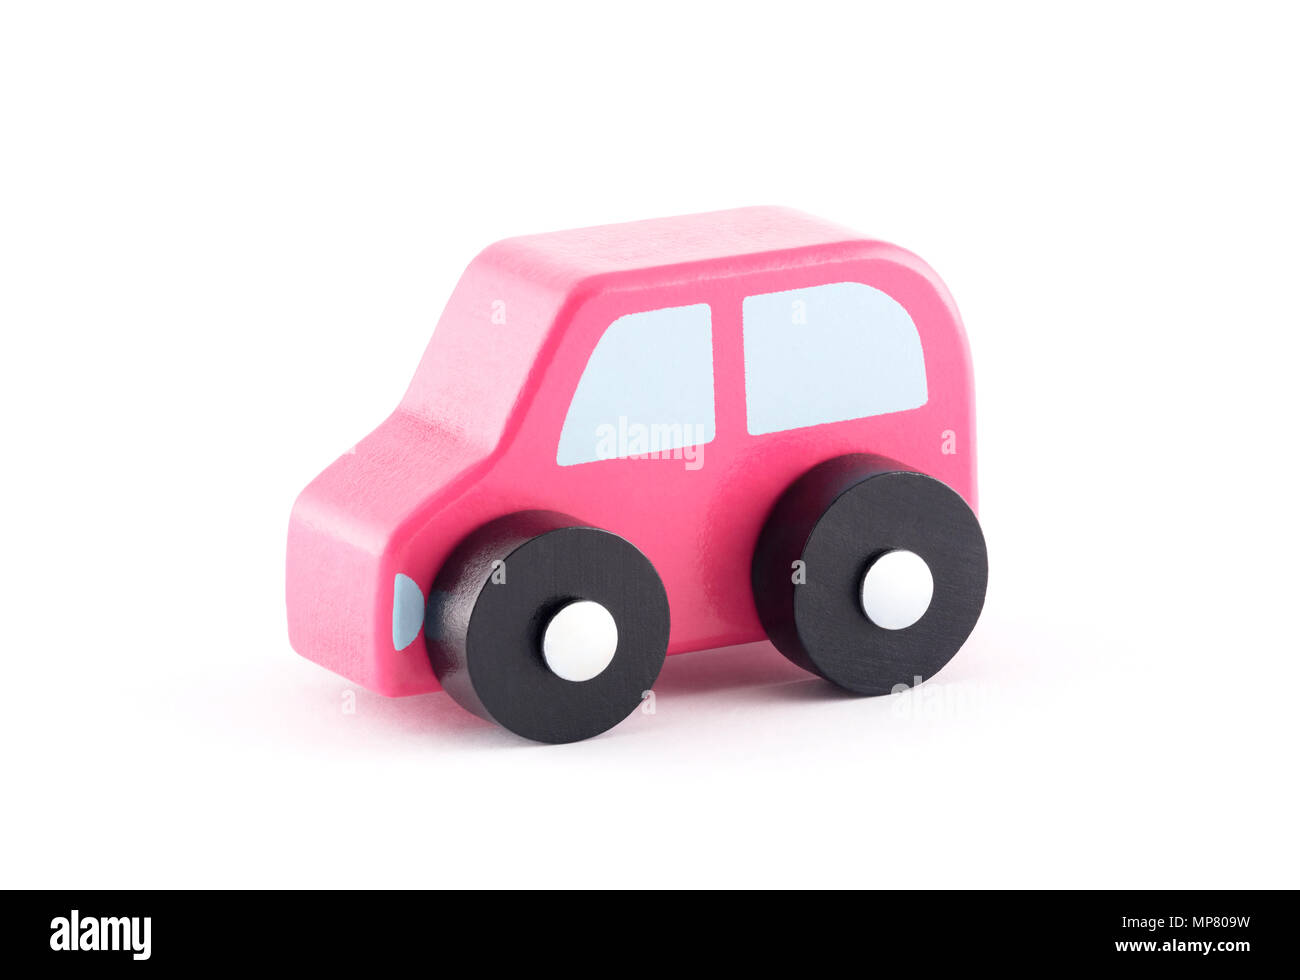 Small wooden toy car on white background with clipping path - Stock Image